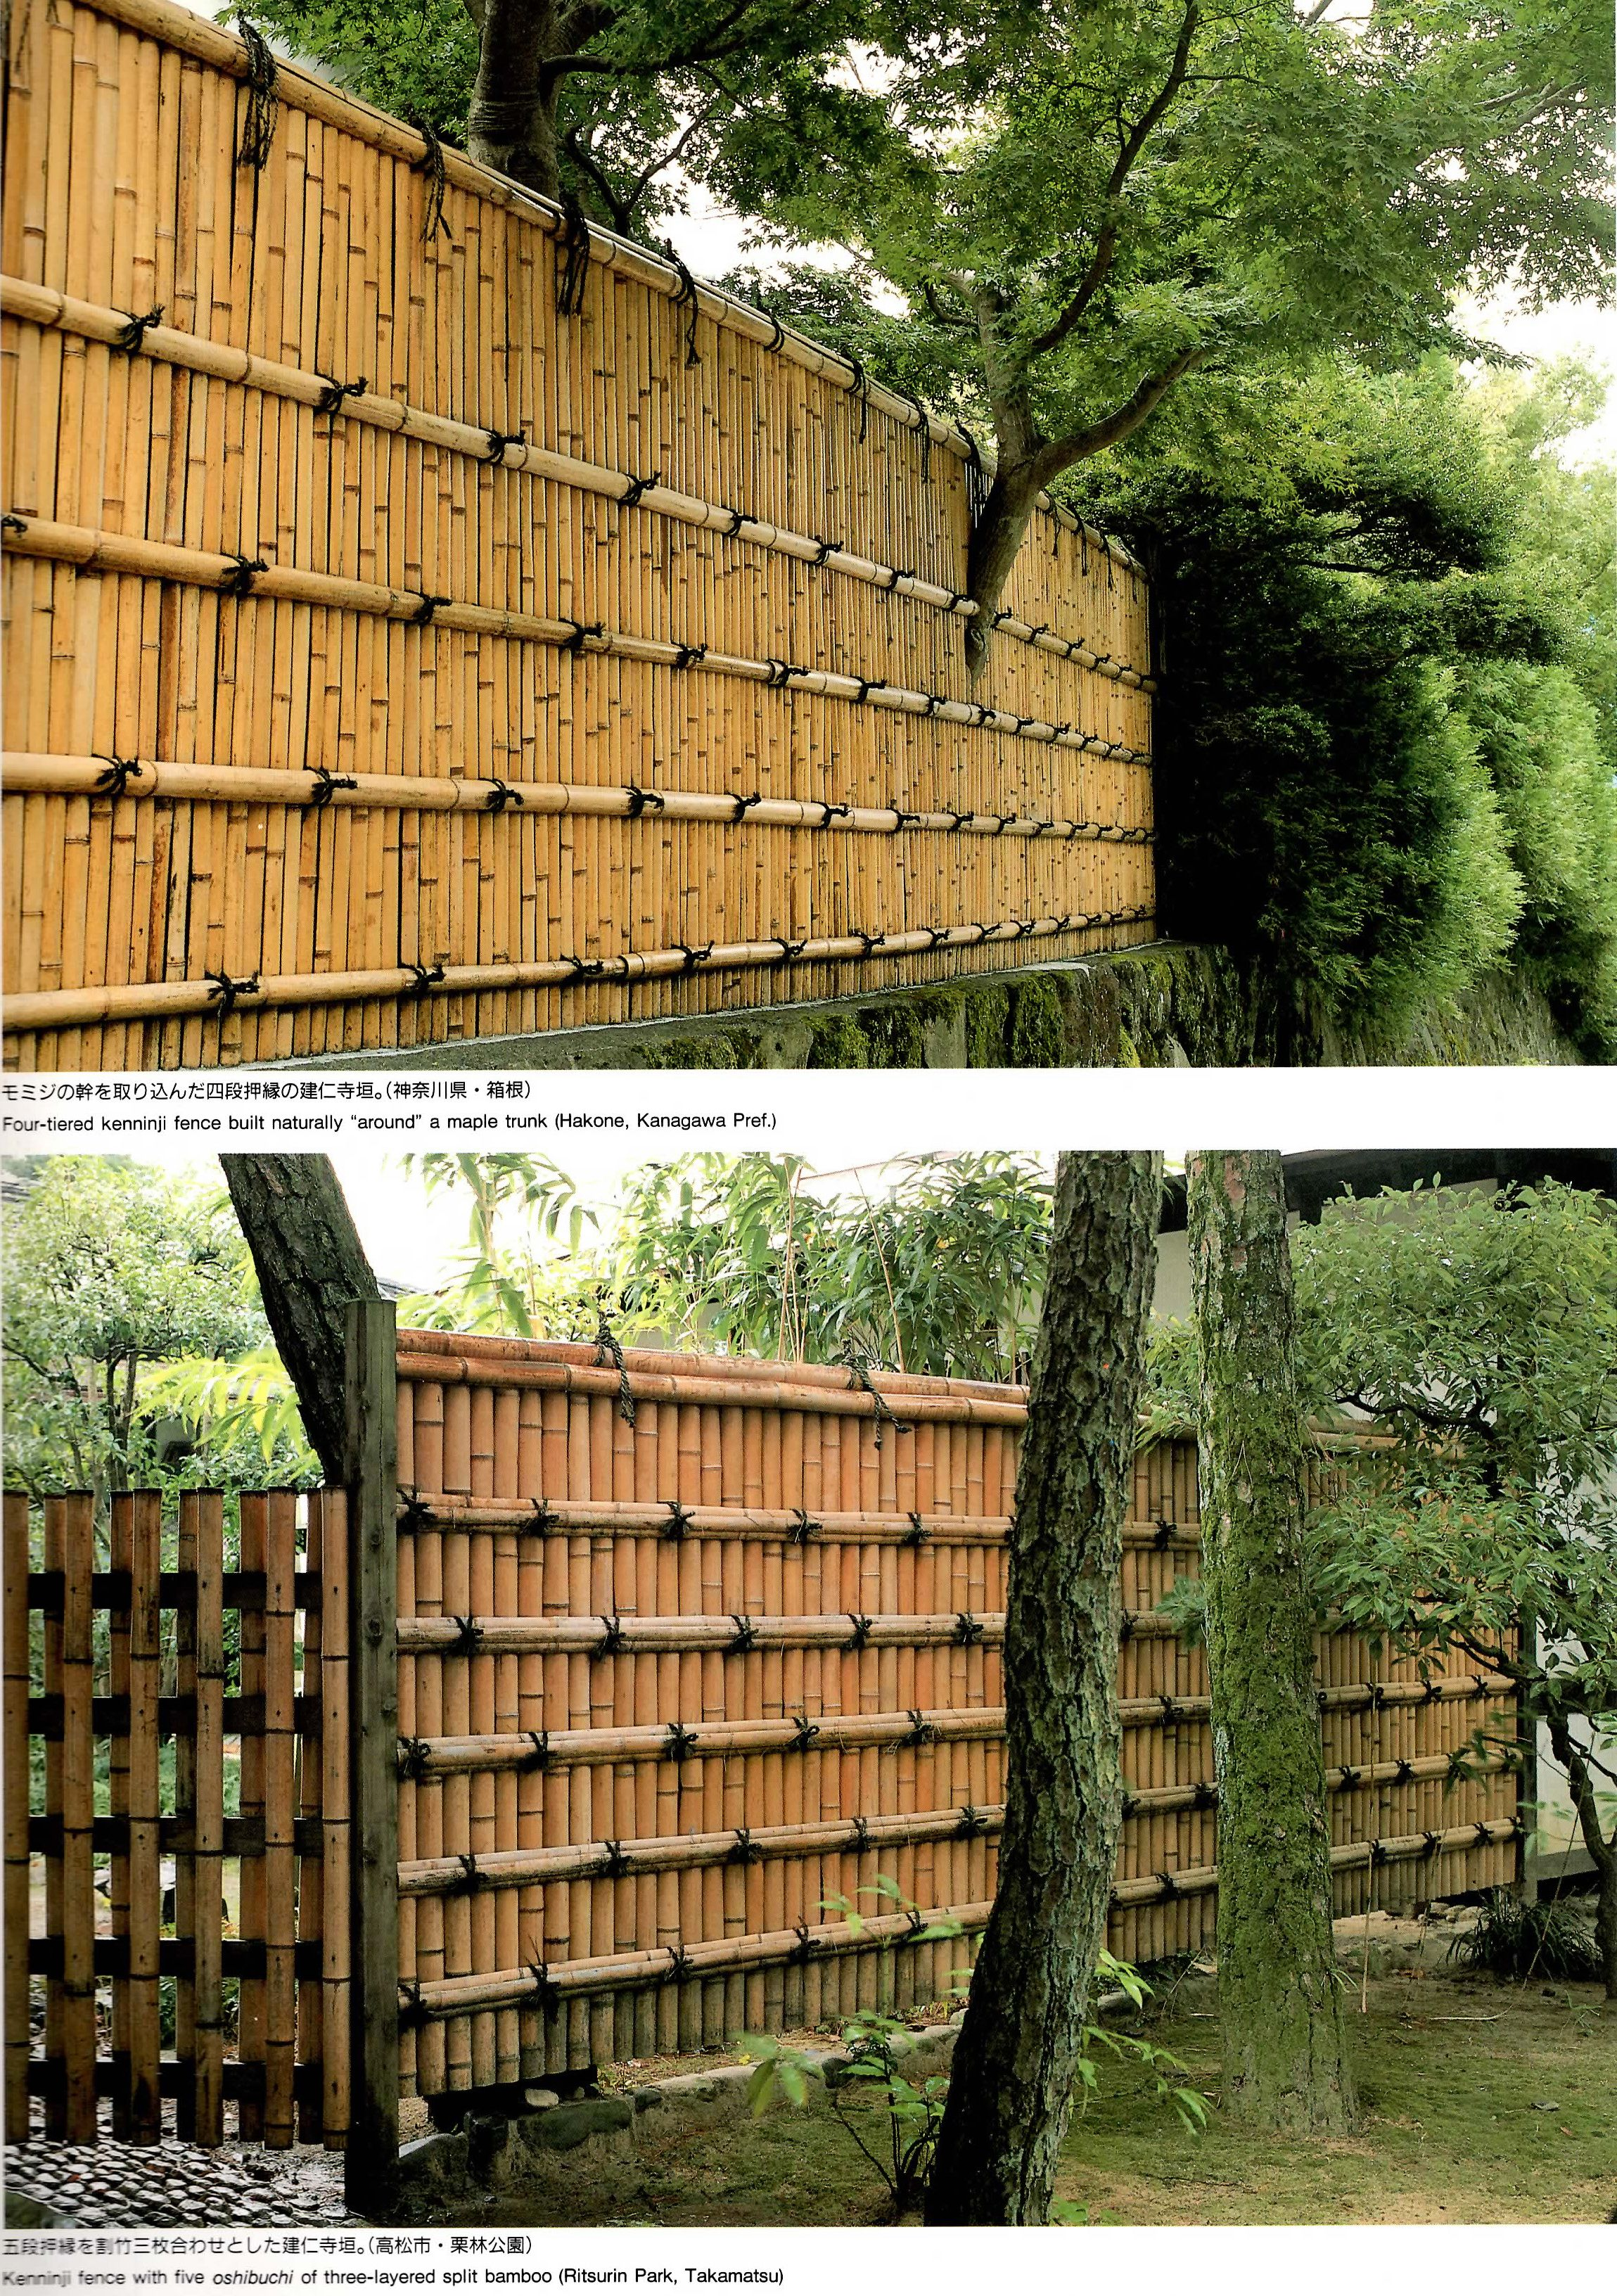 Simple solid bamboo fence fences pinterest bamboo for Simple fence plans